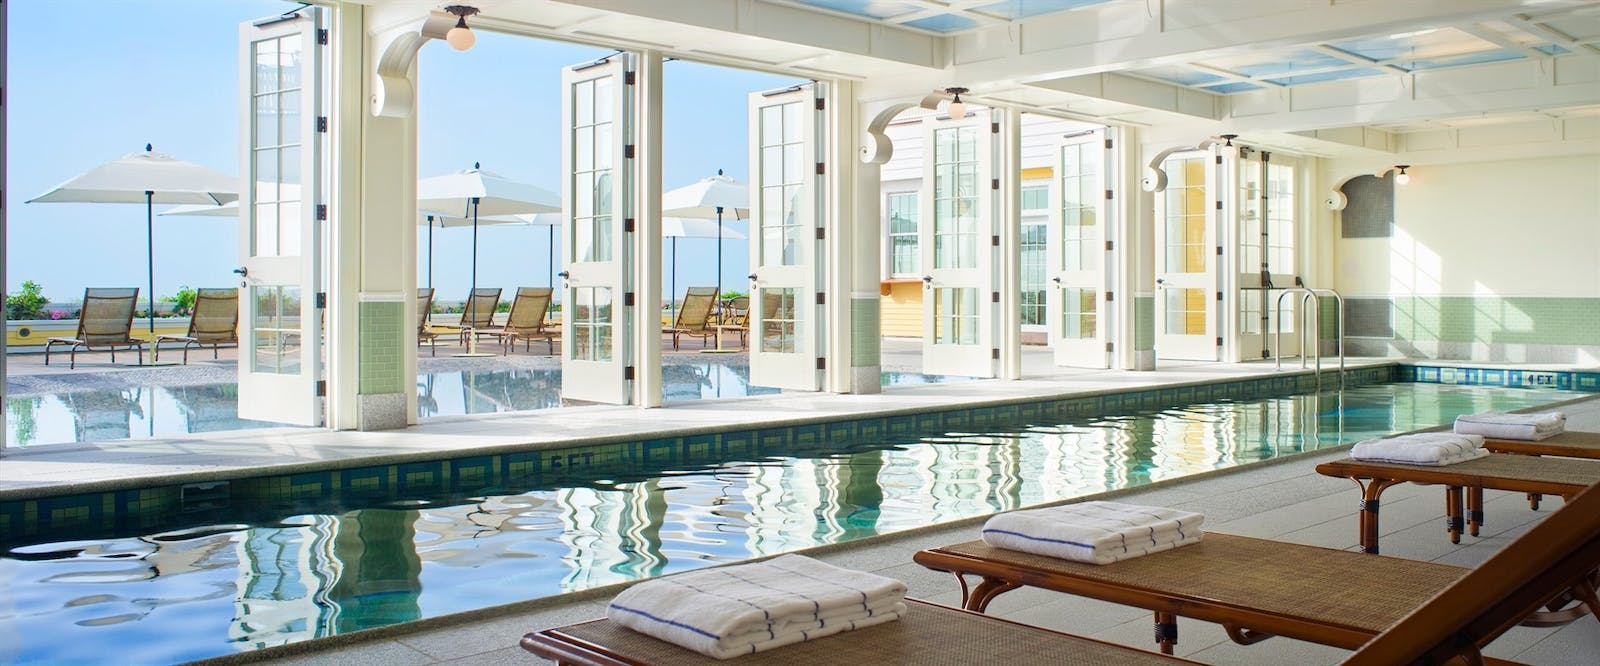 Ocean House Indoor Pool at Ocean House Rhode Island, New England